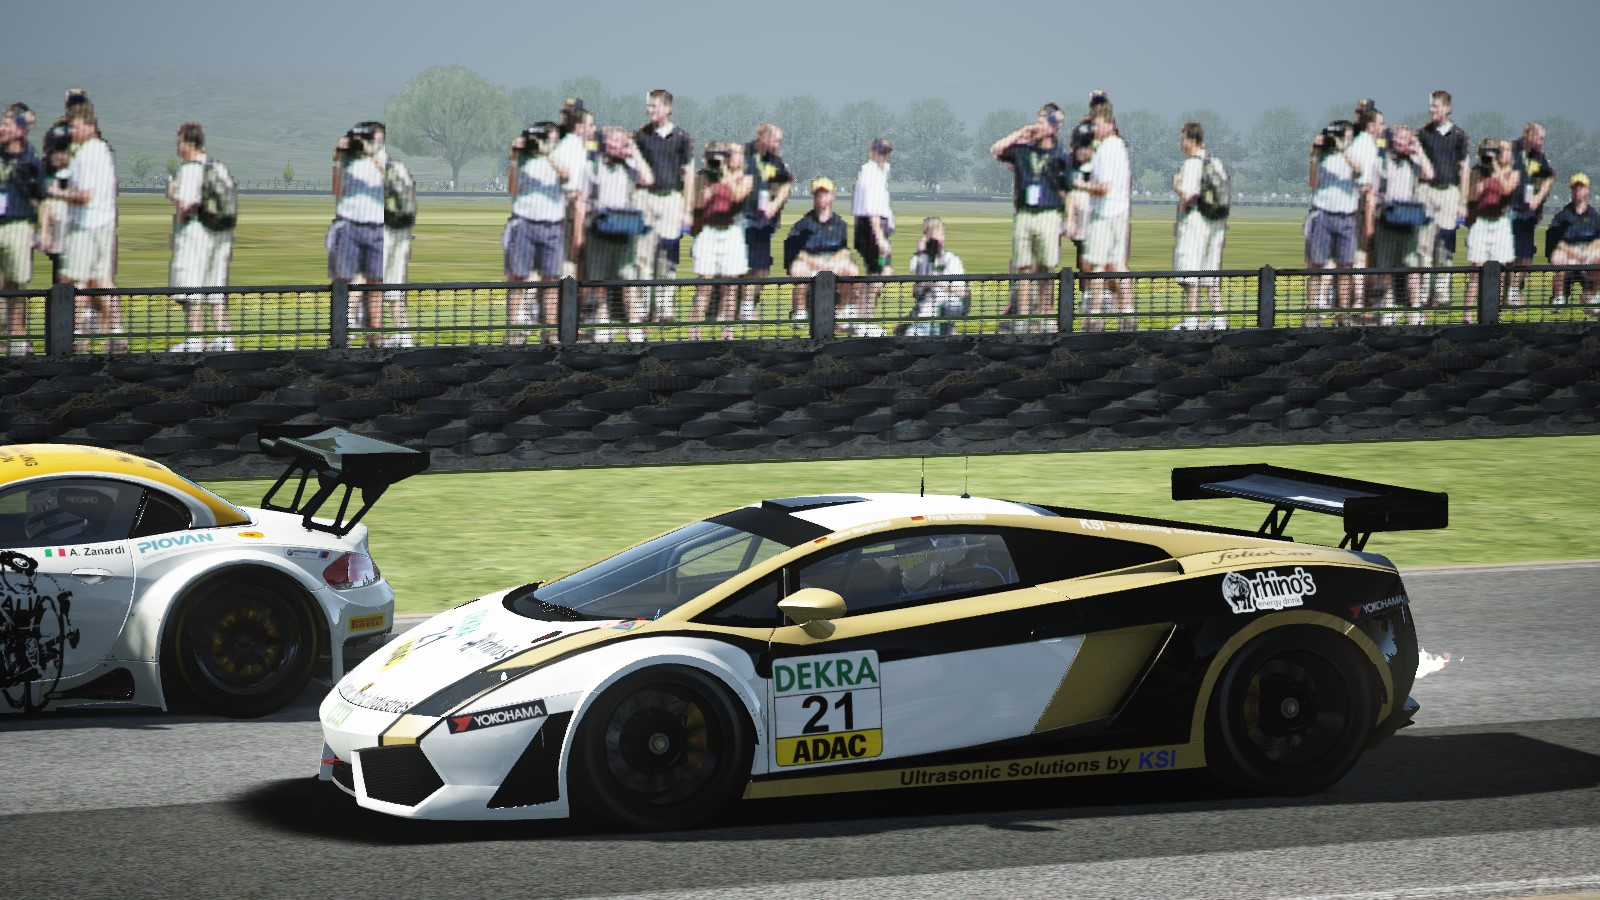 Screenshot_lamborghini_gallardo_gt3_goodwood_12-9-115-4-26-14.jpg